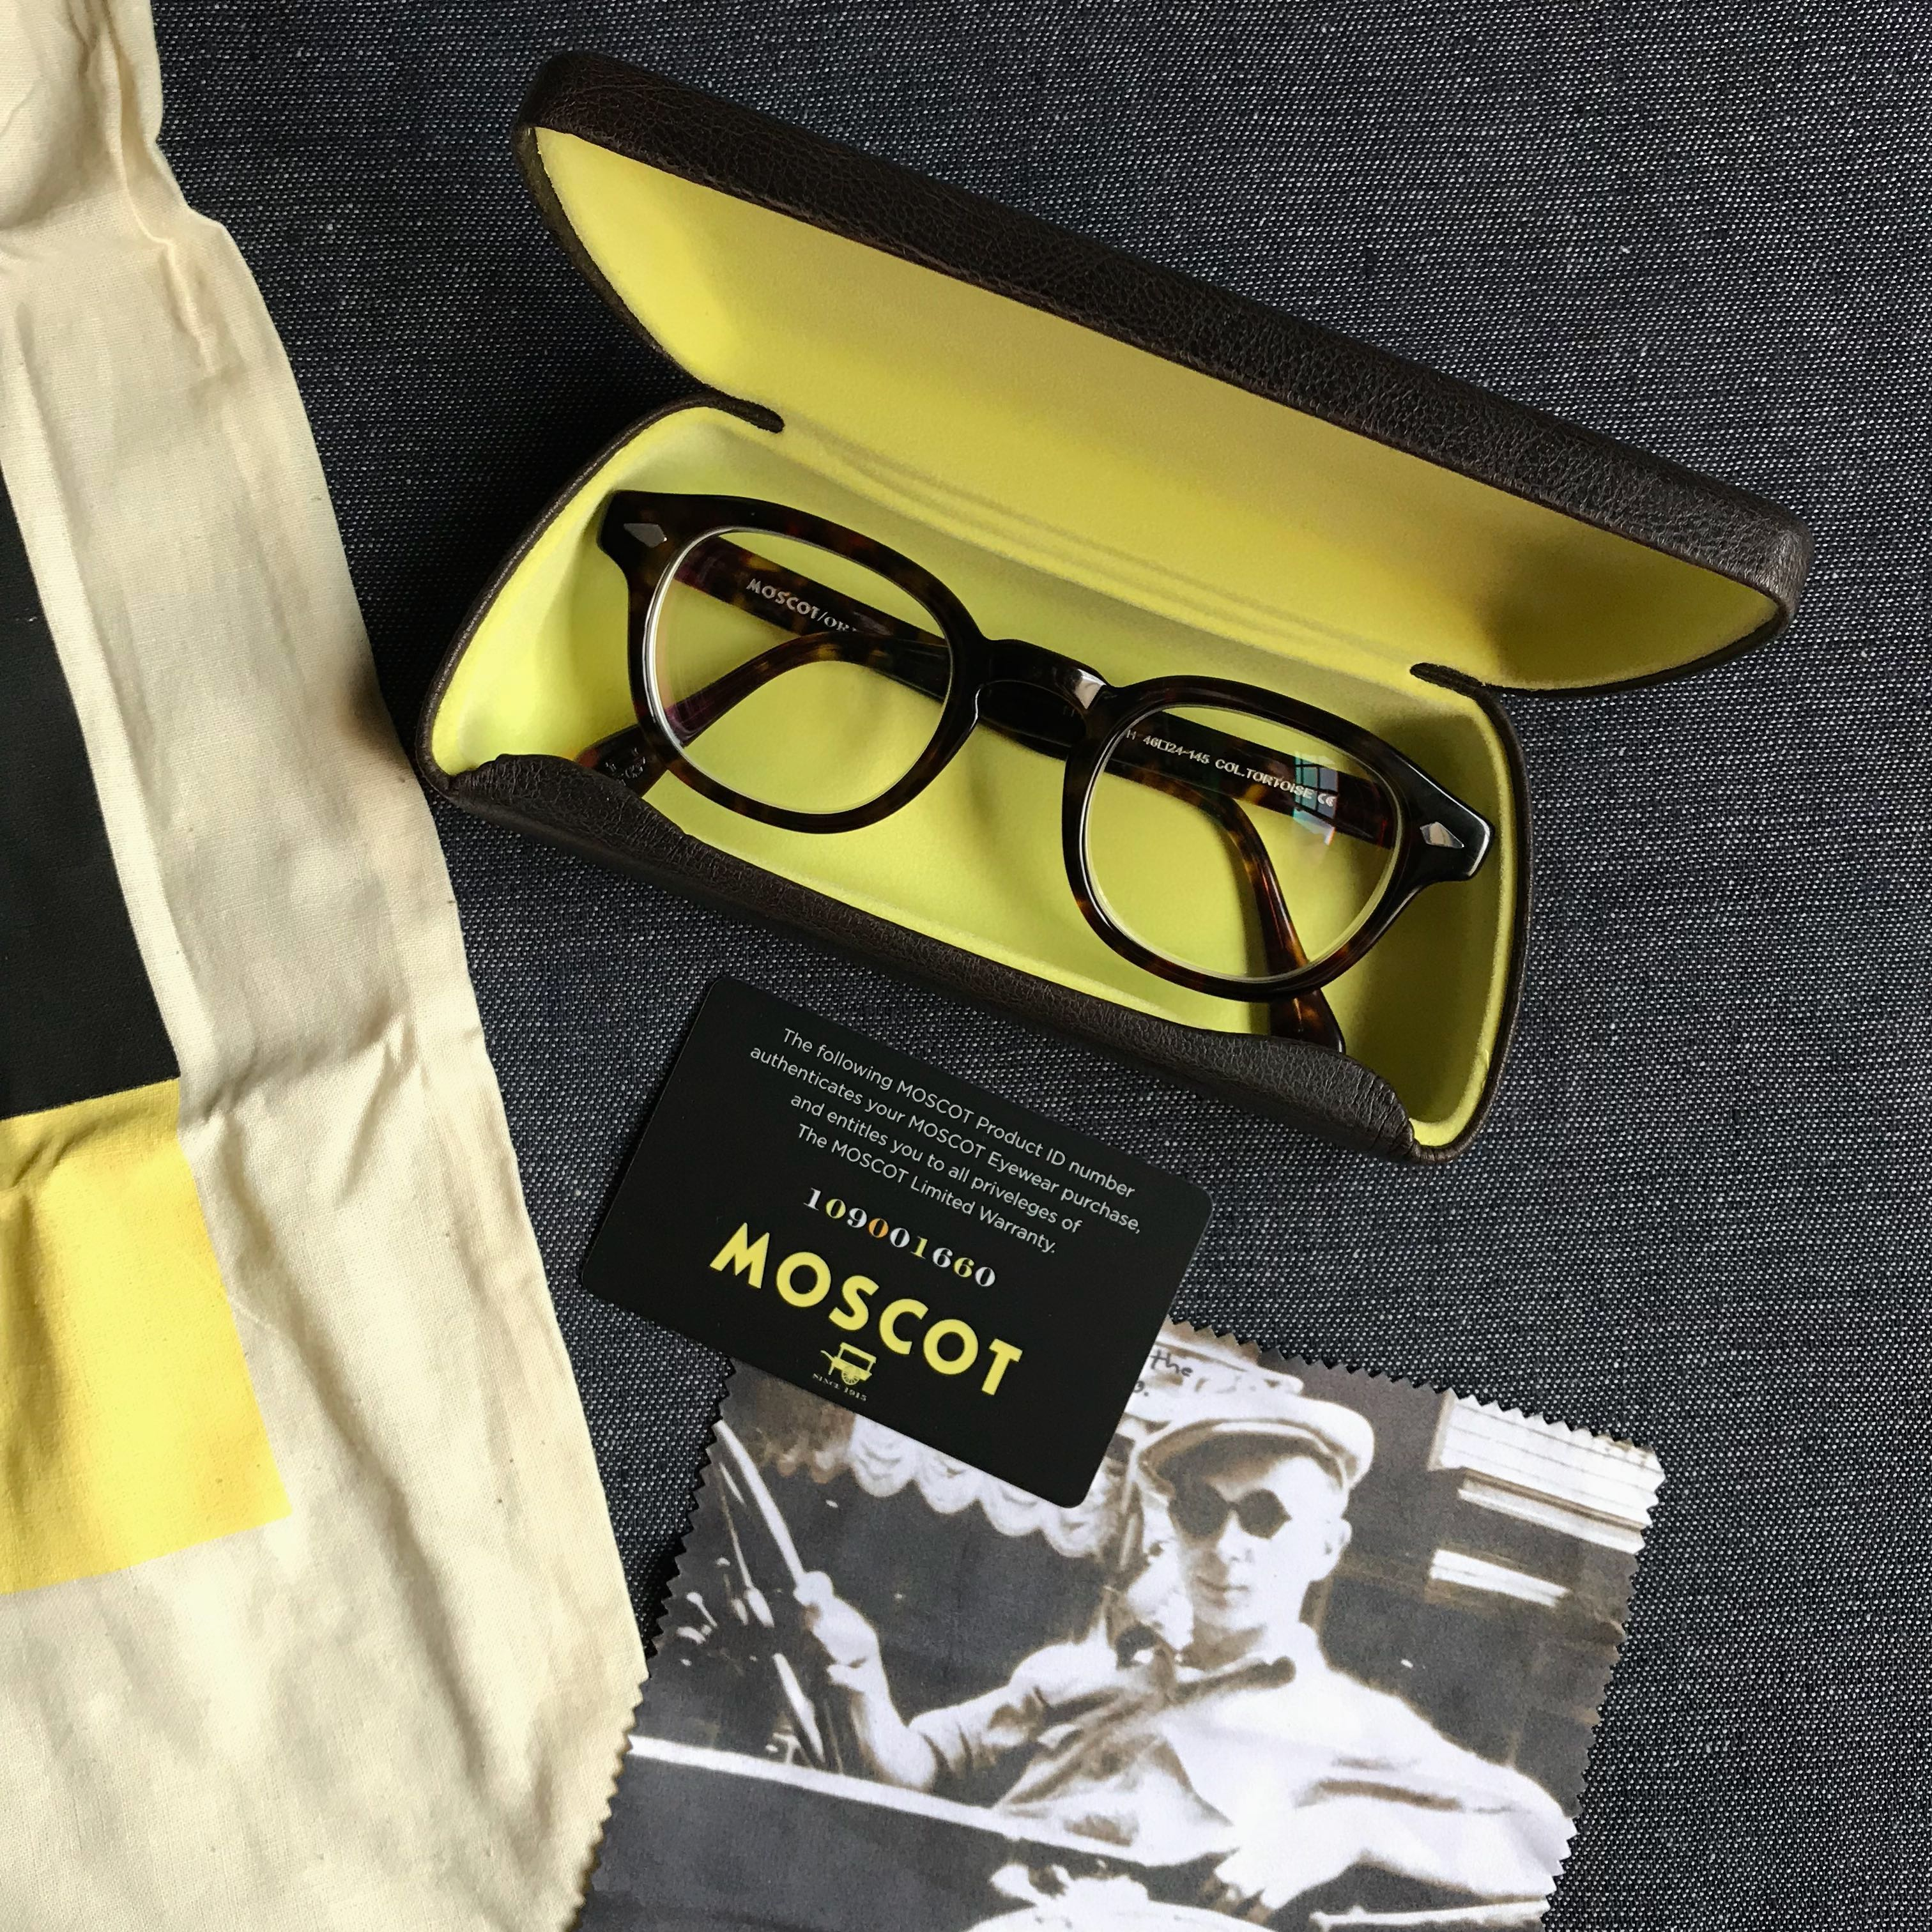 439070b3905 Moscot lemtosh tortoise size full set from paris miki plaza jpg 3024x3024  Moscot nyc glasses